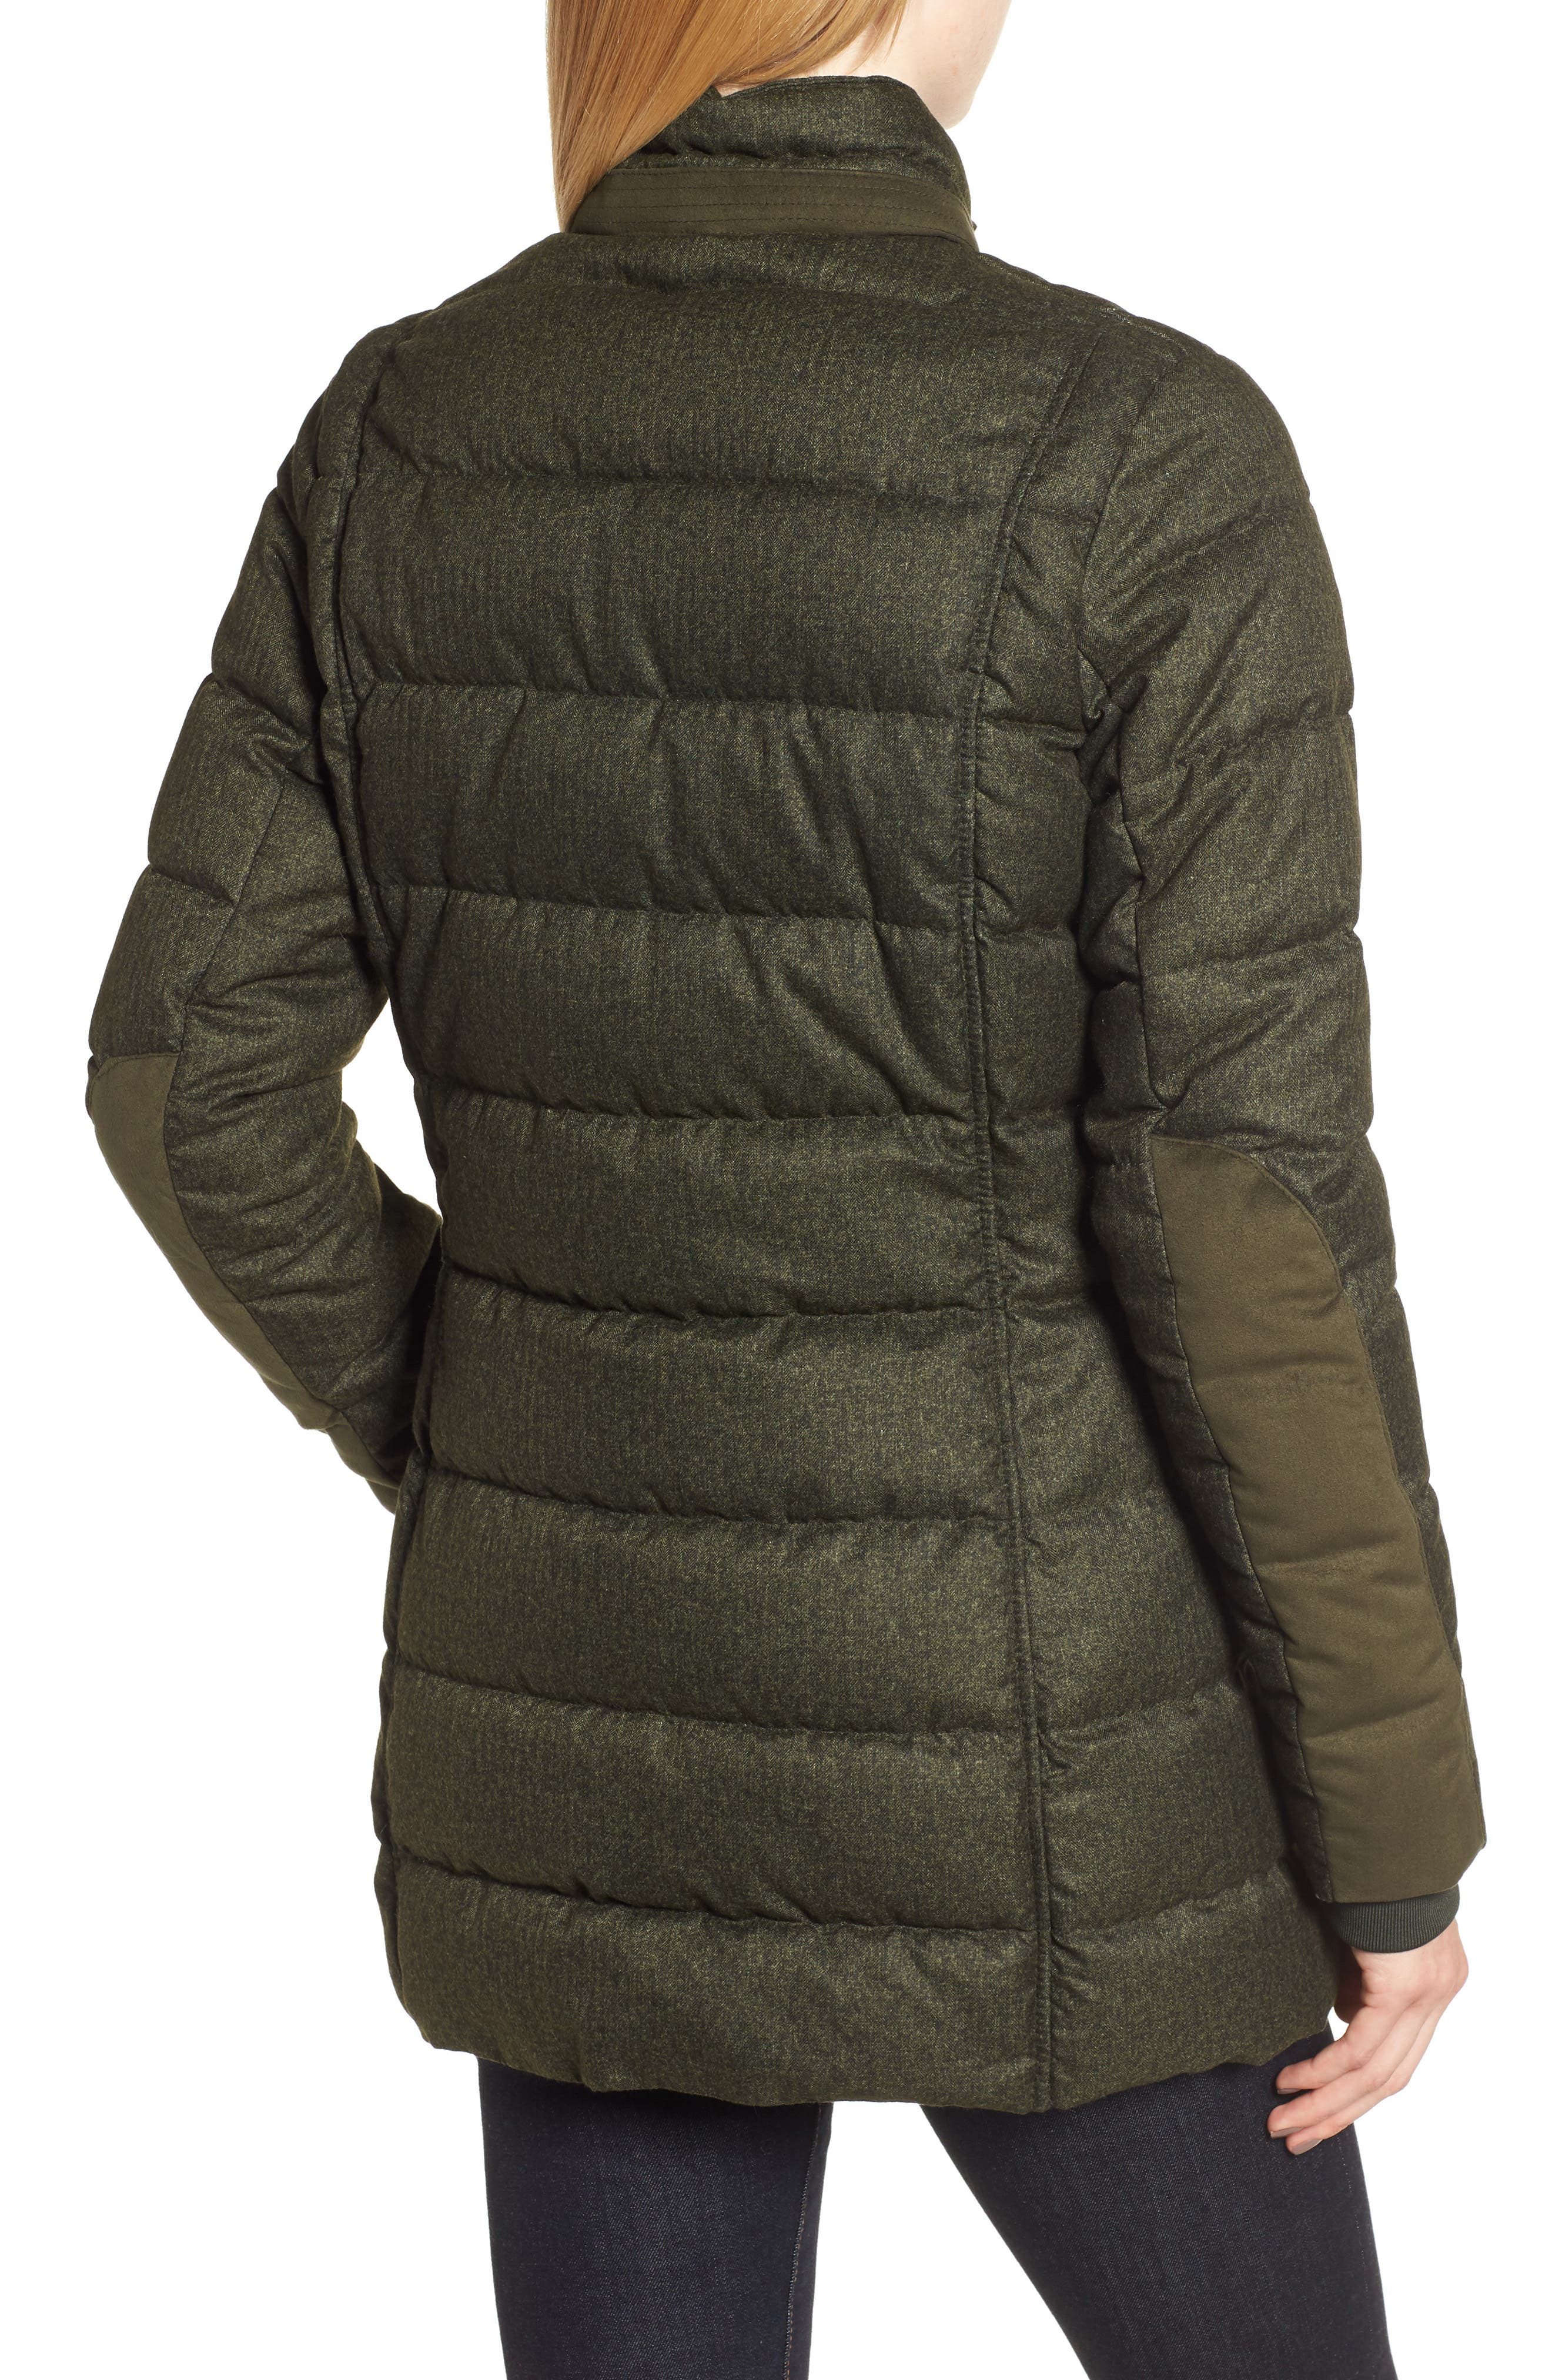 Goldfinch Quilted Jacket,                             Alternate thumbnail 2, color,                             OLIVE